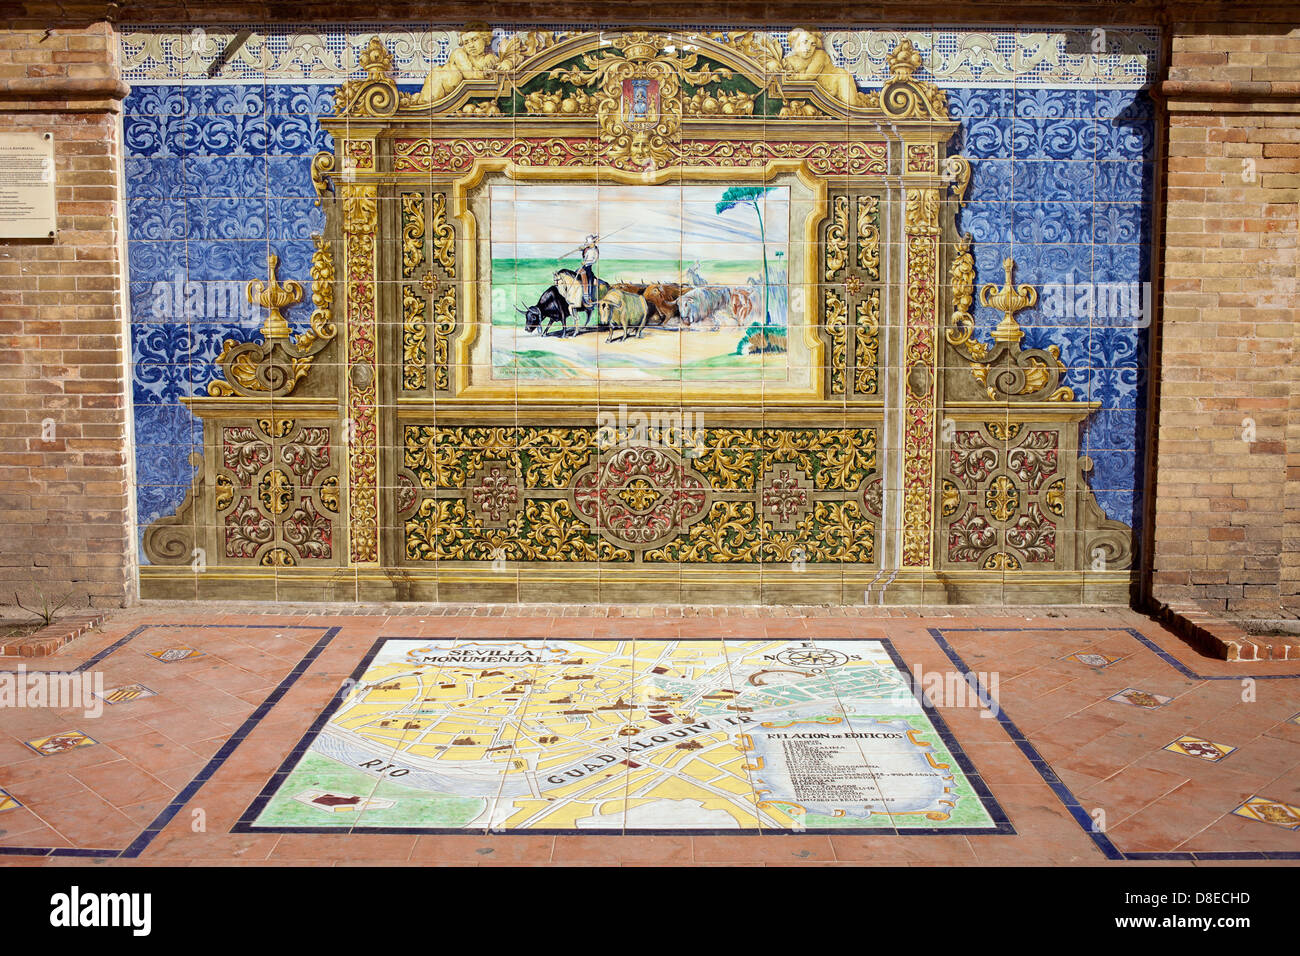 Painted Azulejos glazed ceramic tiles on Plaza de Espana in Seville, Spain, Andalusia region. - Stock Image